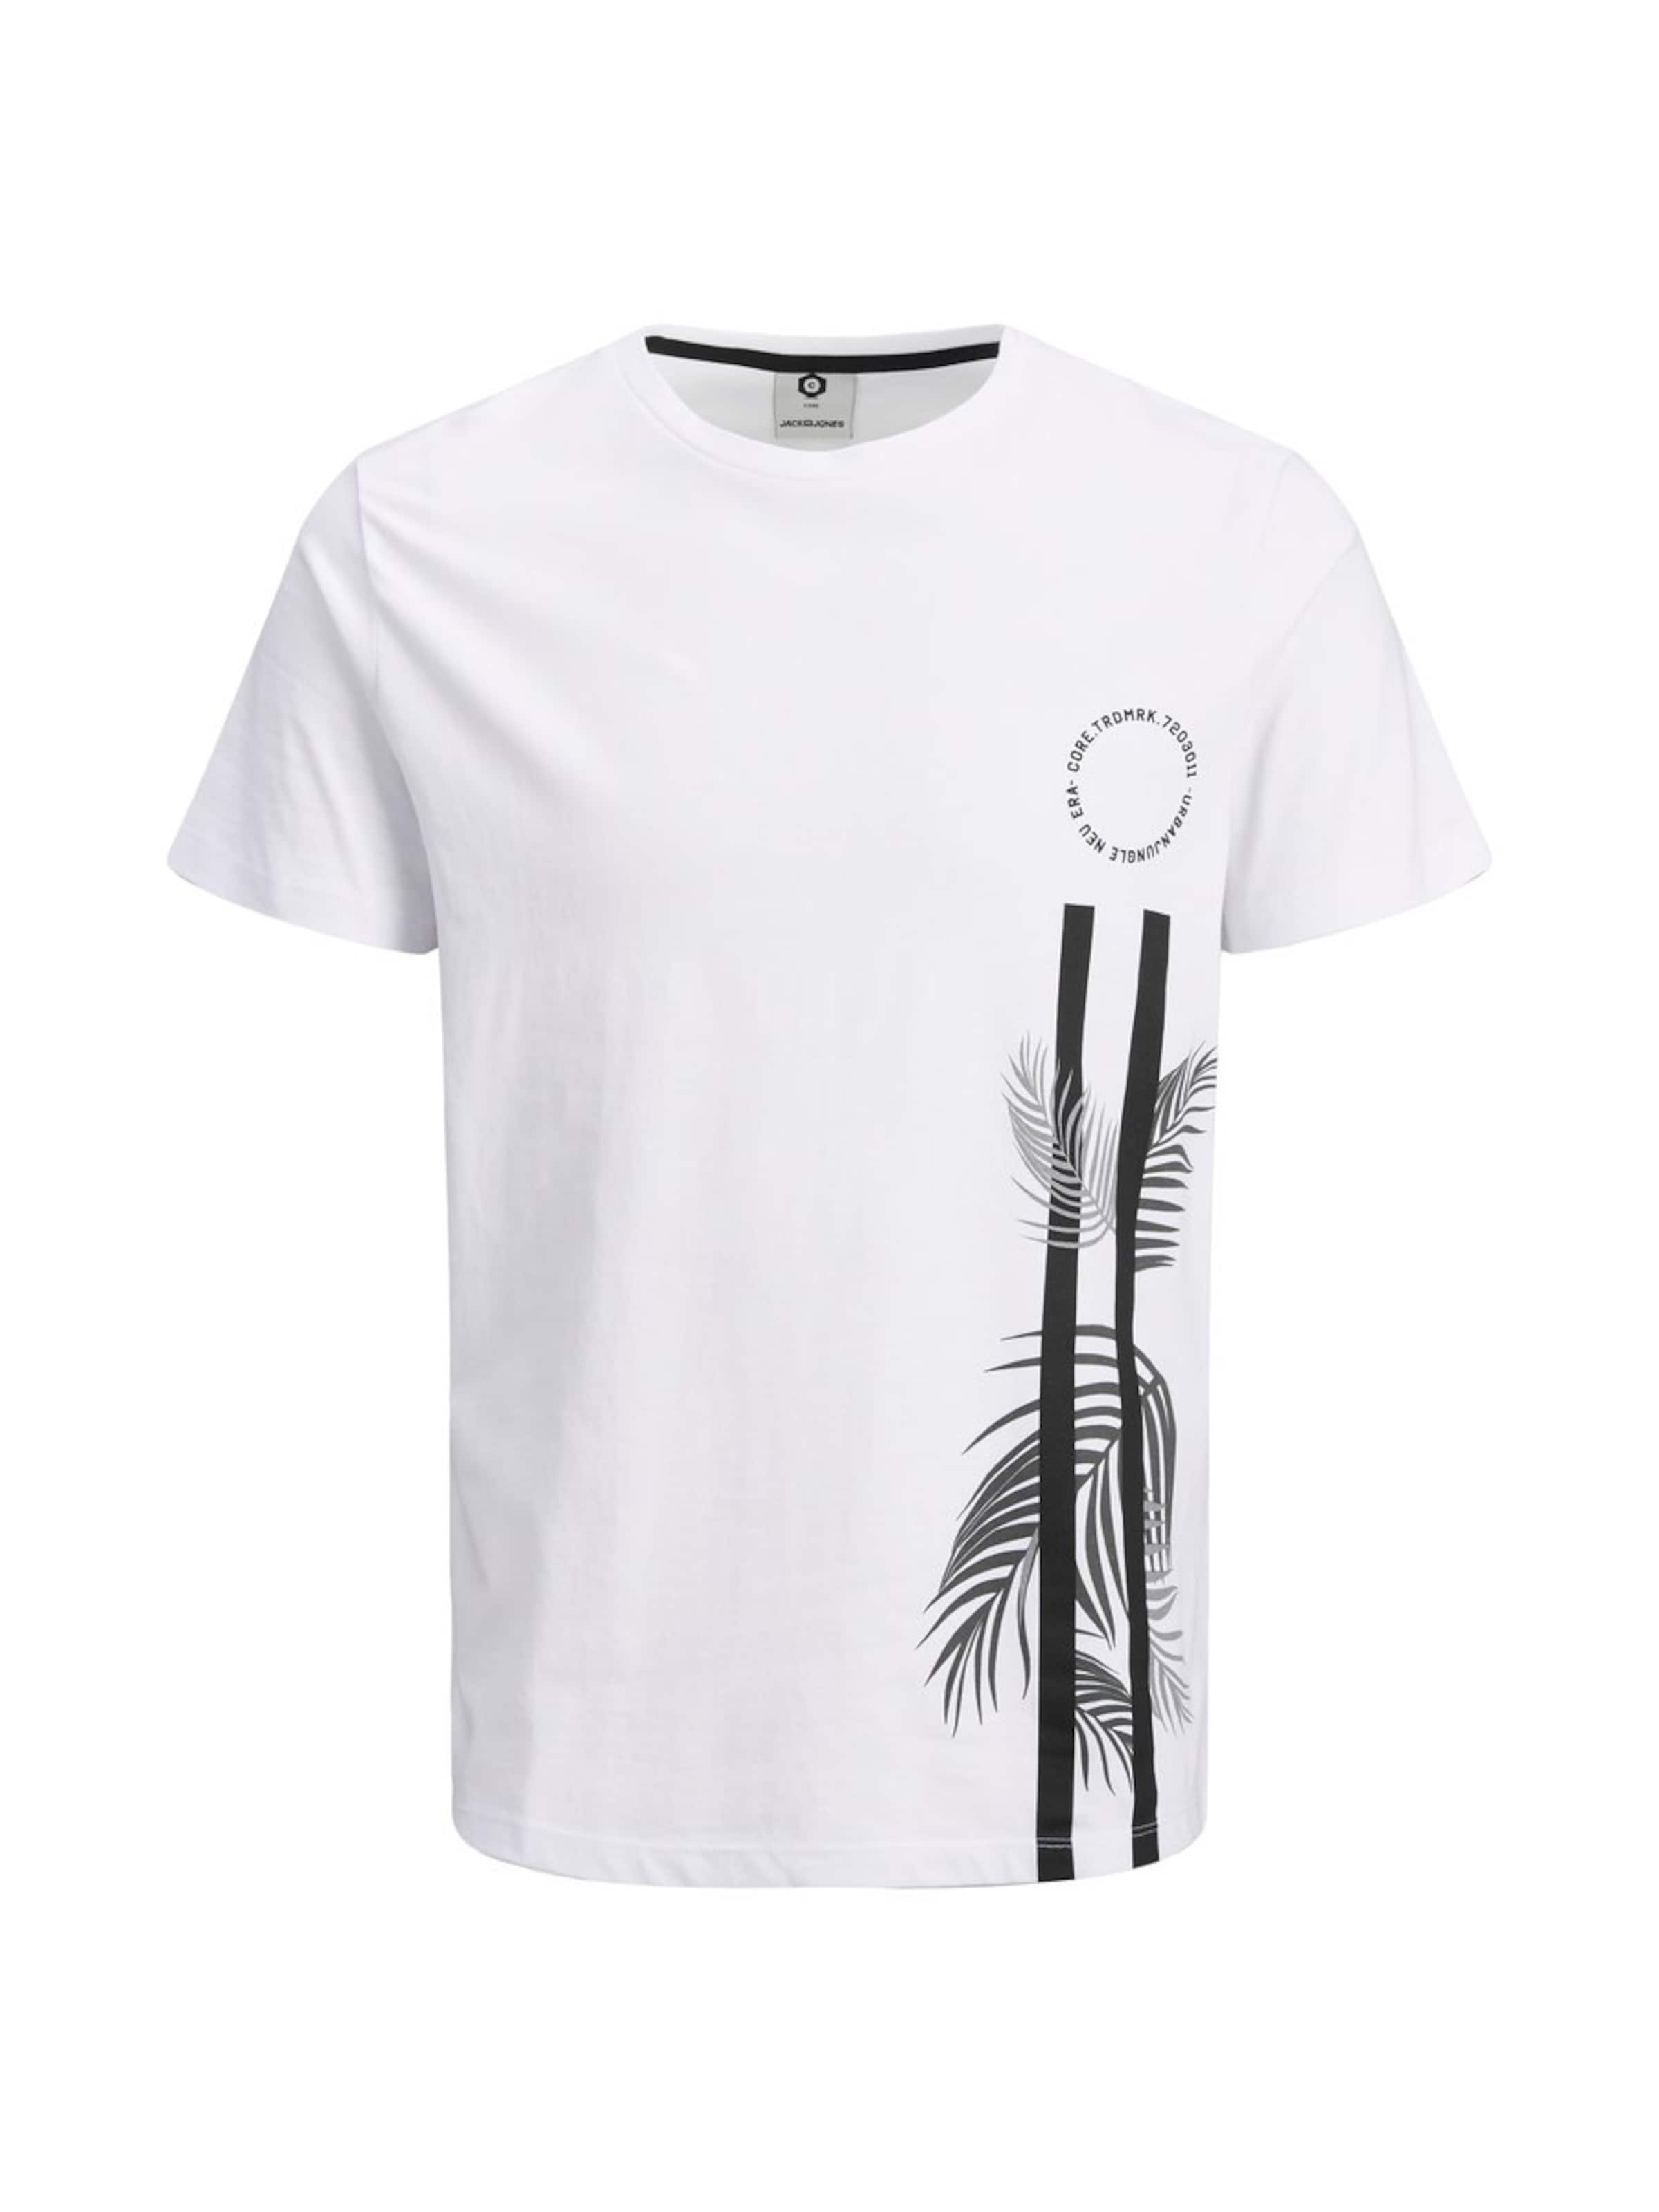 Jones Jackamp; En Blanc T shirt L4AqRj53